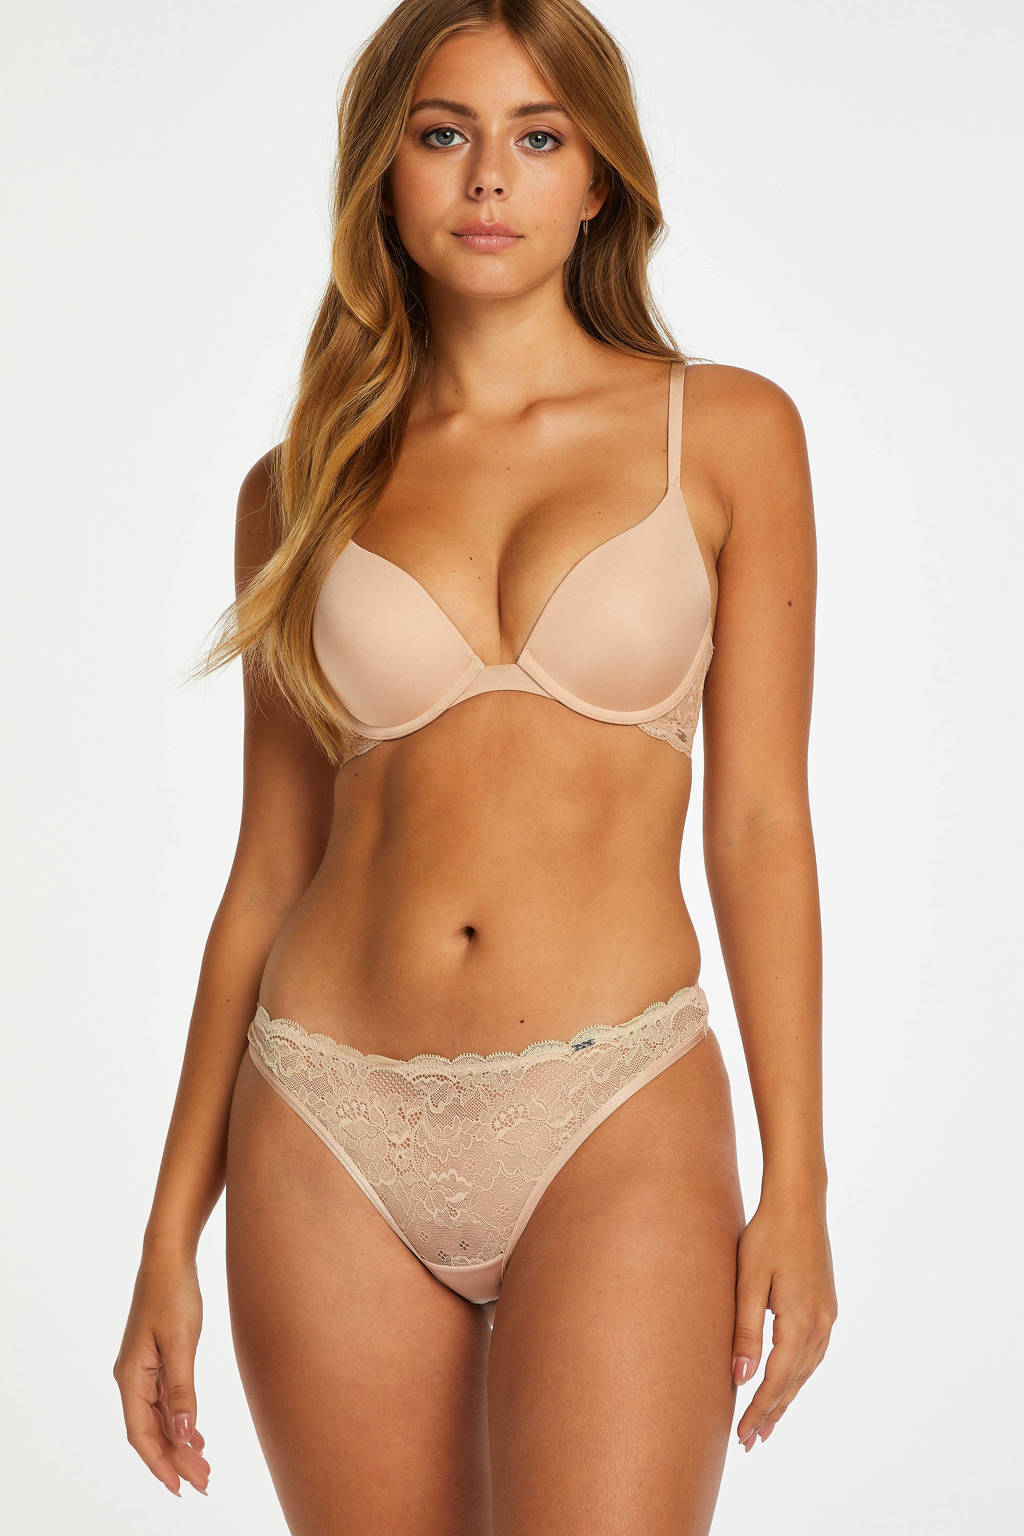 Push Hunkemöller Angie Bh Up Beige rCoBxde